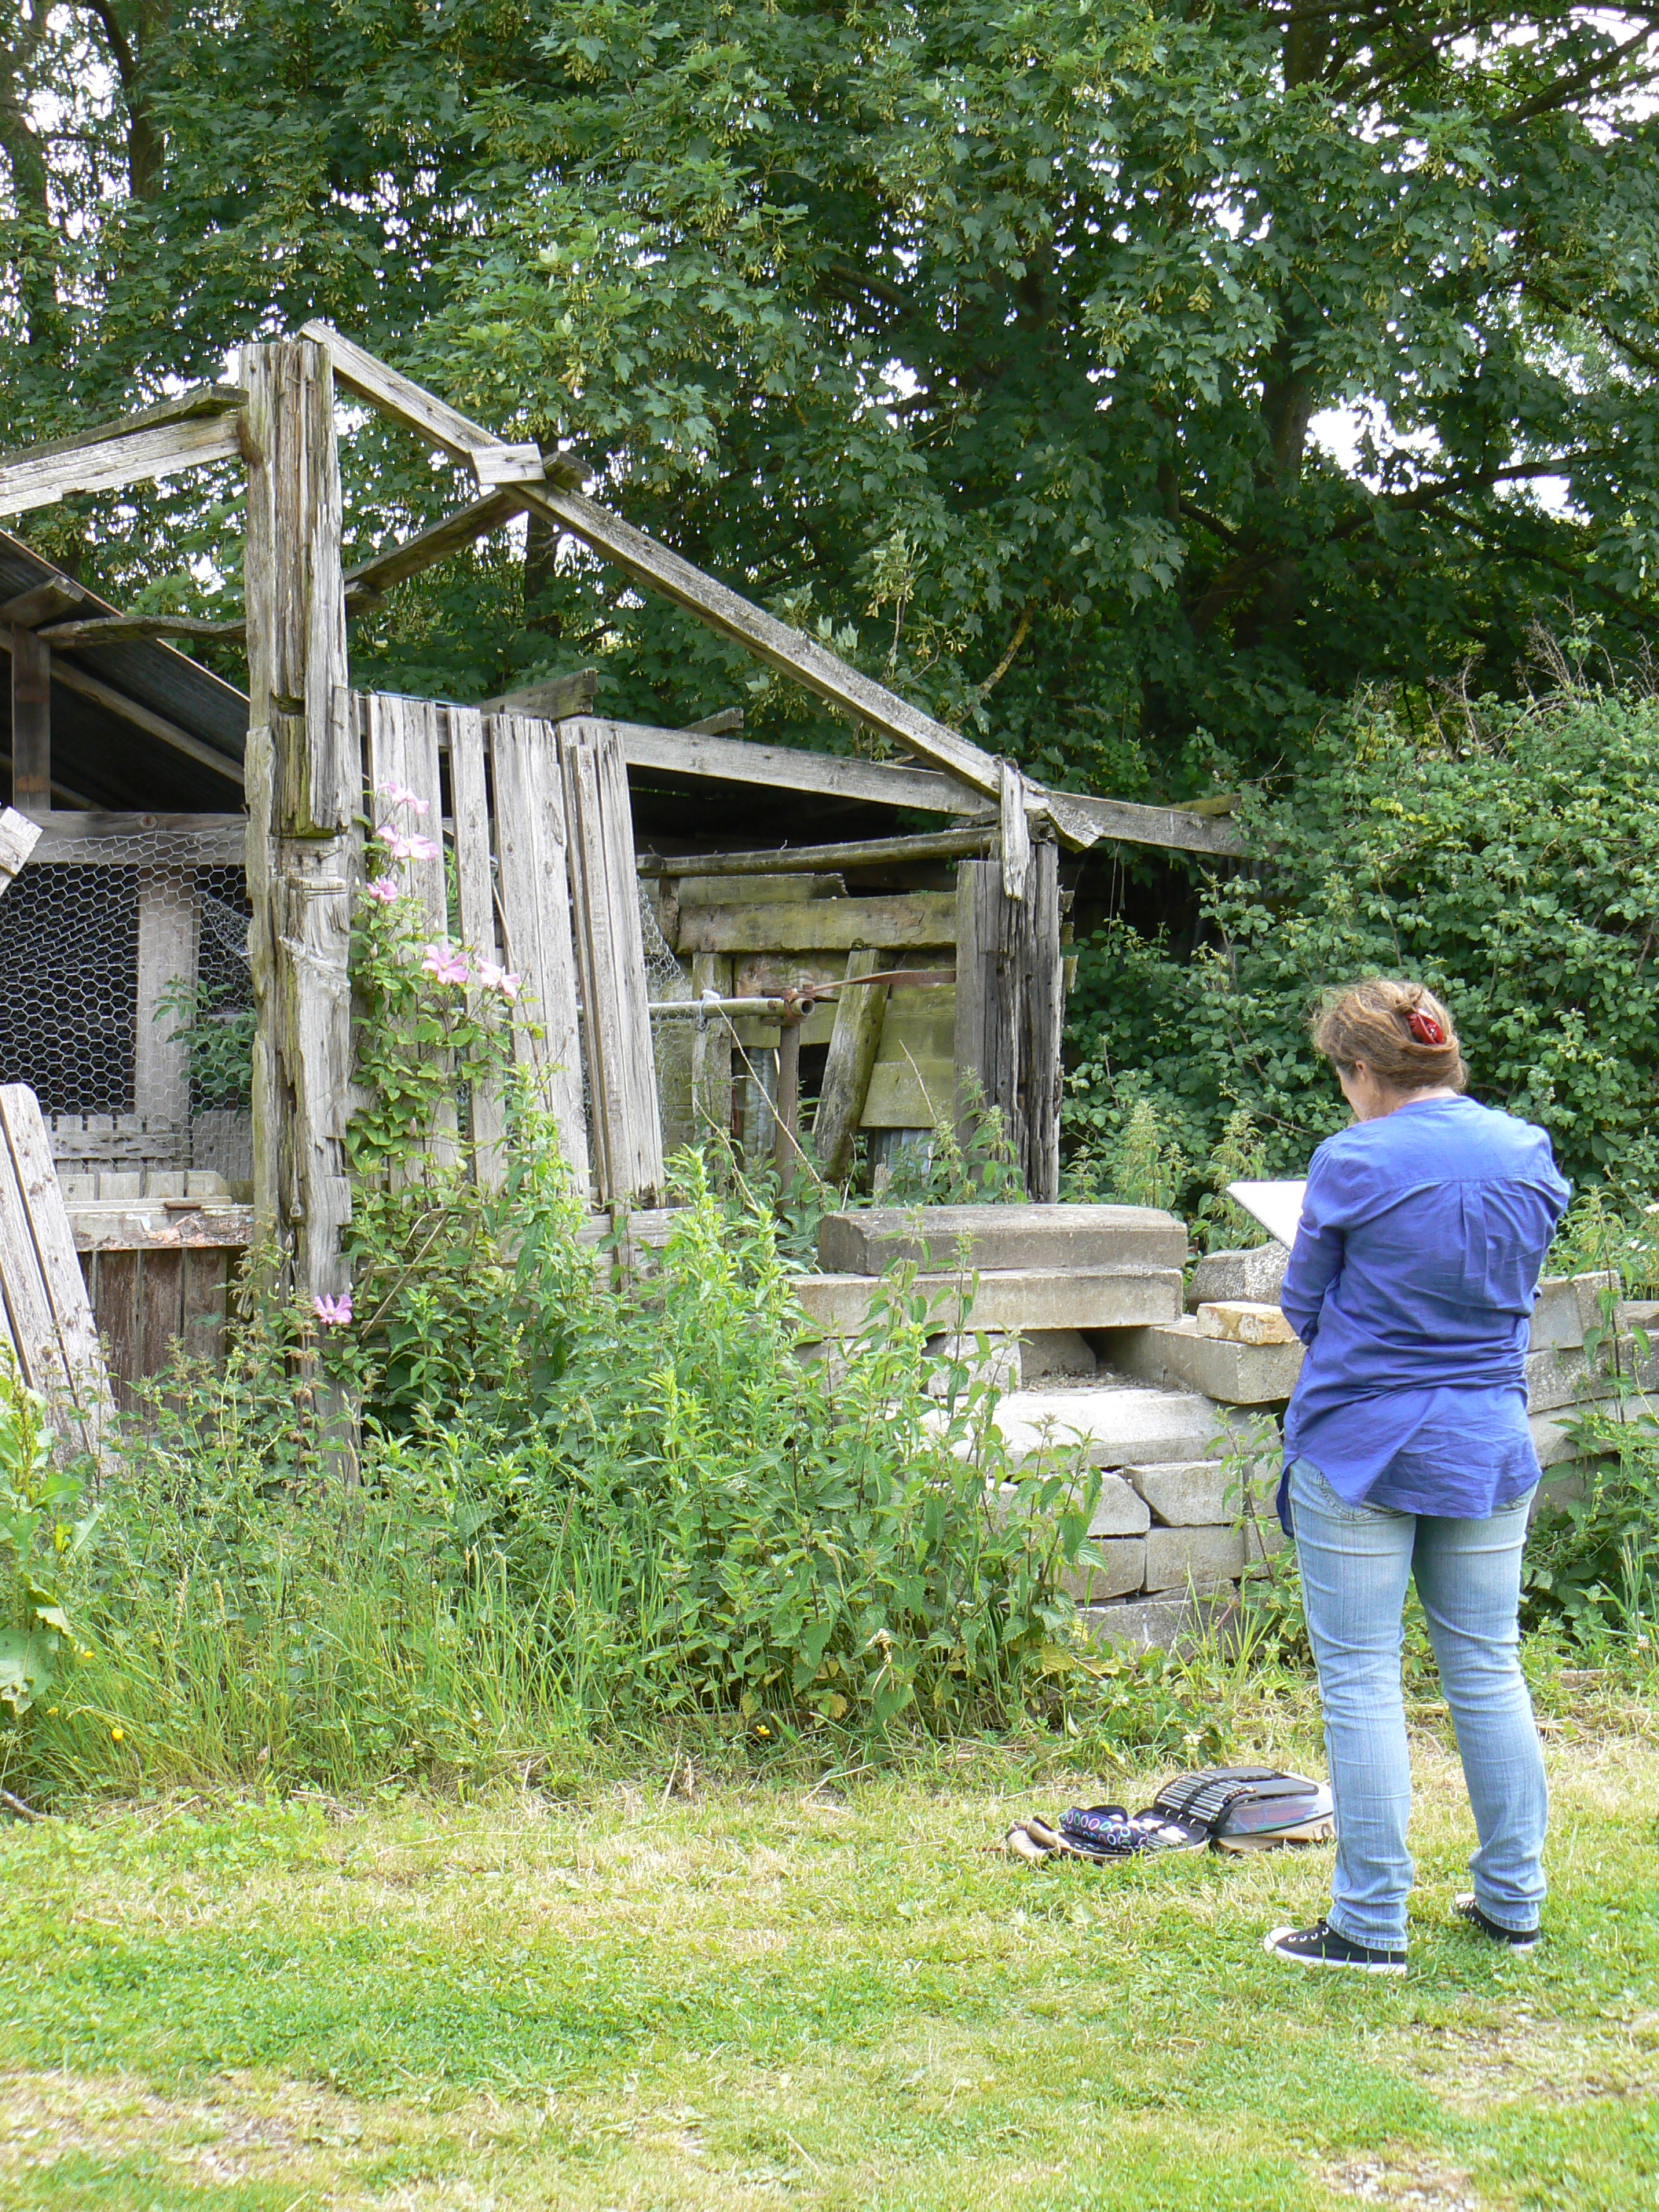 Wingrave Art Club visit.........observing clematis on one of the old outbuildings.